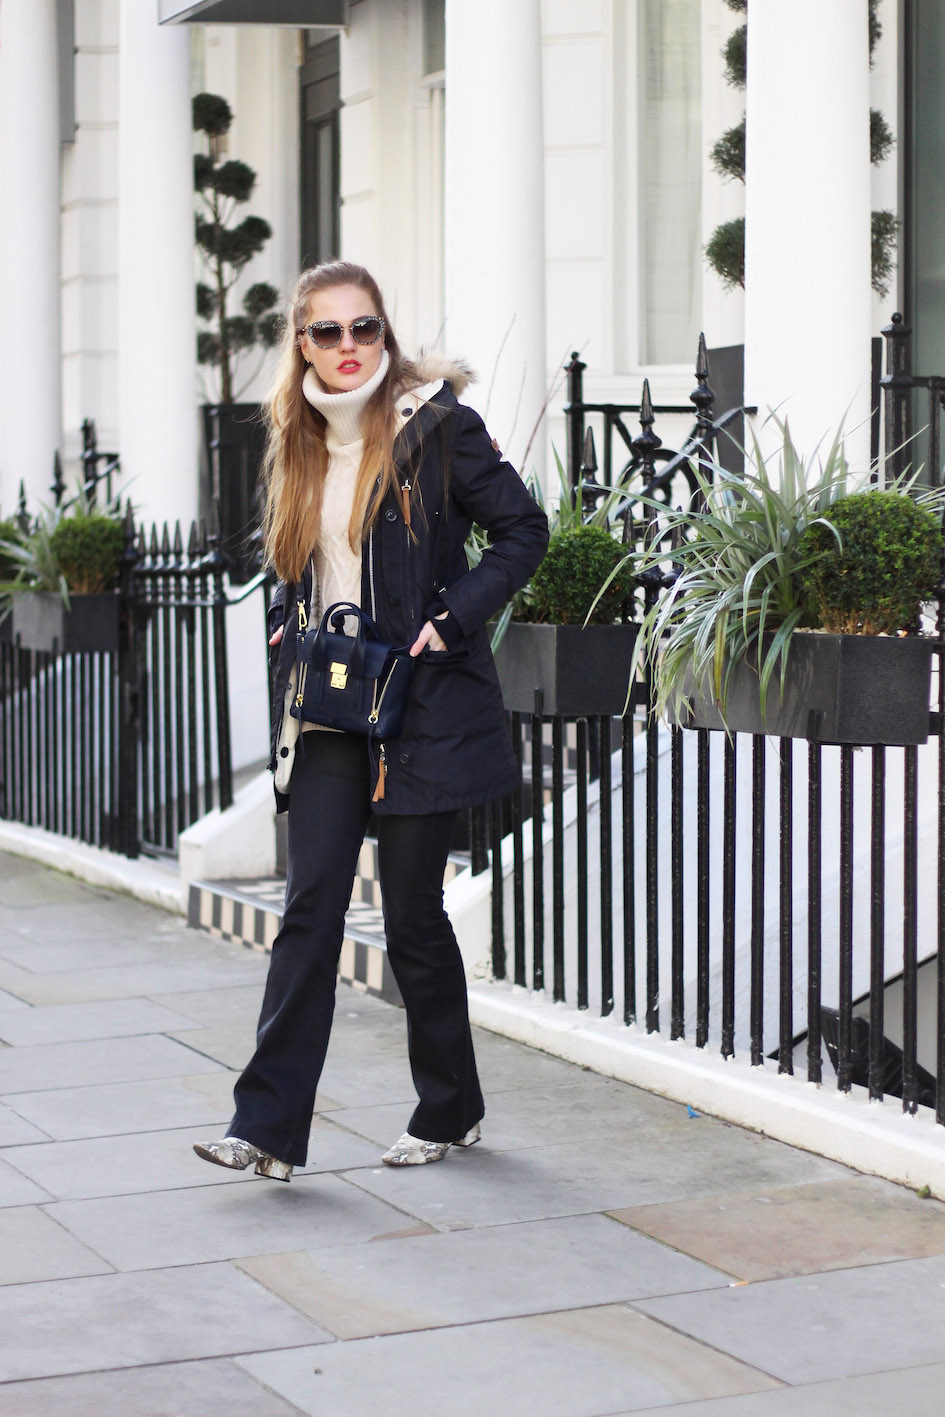 floortjeloves, london, travel, zara, moscow, 3.1 phillip lim, farfetch, 7 for all mankind, sweater, knitwear, flared jeans